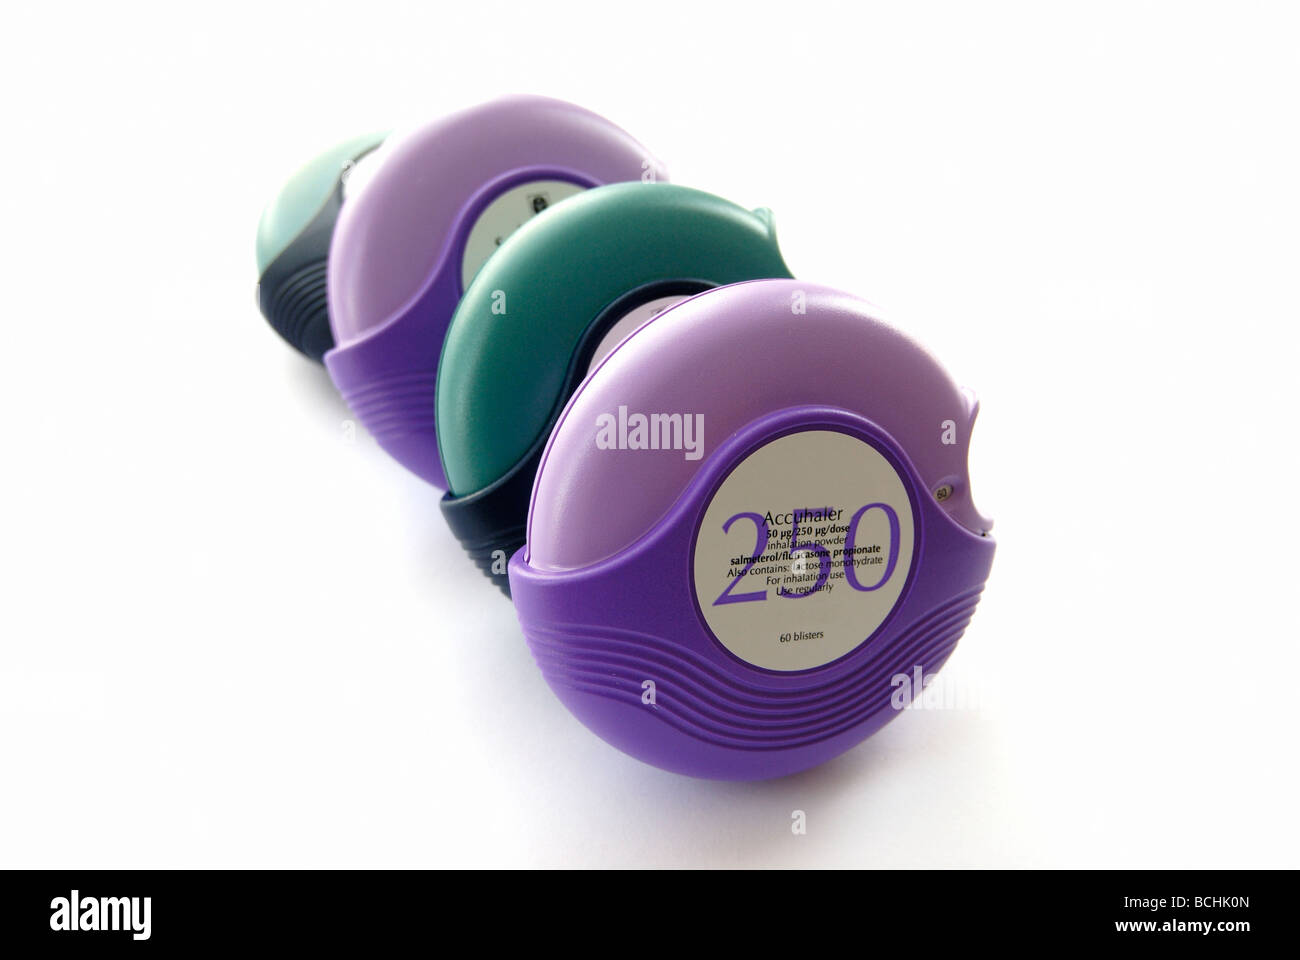 Asthma inhalers - Stock Image